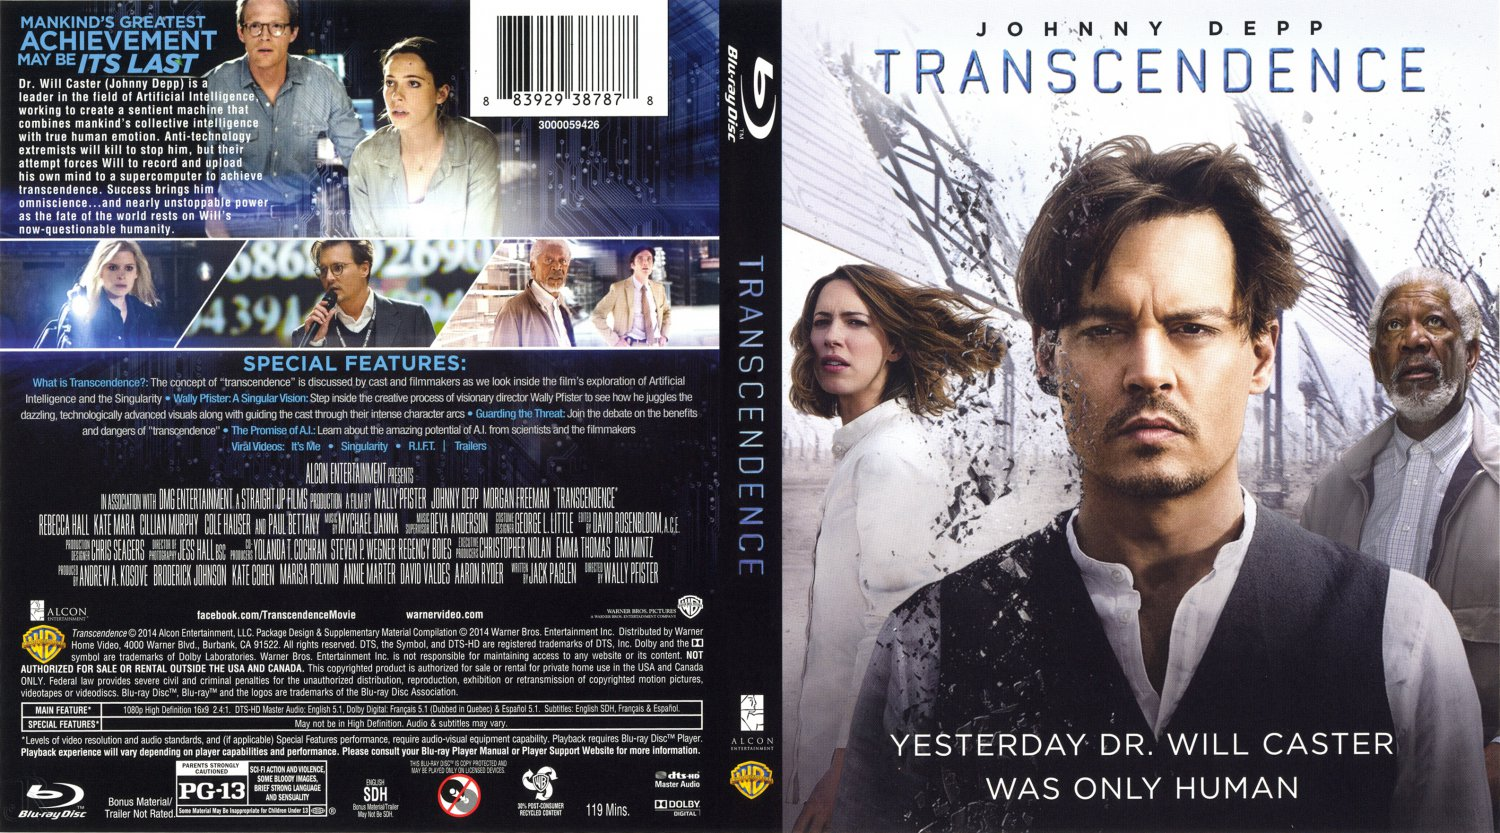 Premonition   DVD Covers, BluRay Covers, and Cover art   Transcendence Dvd Cover Art